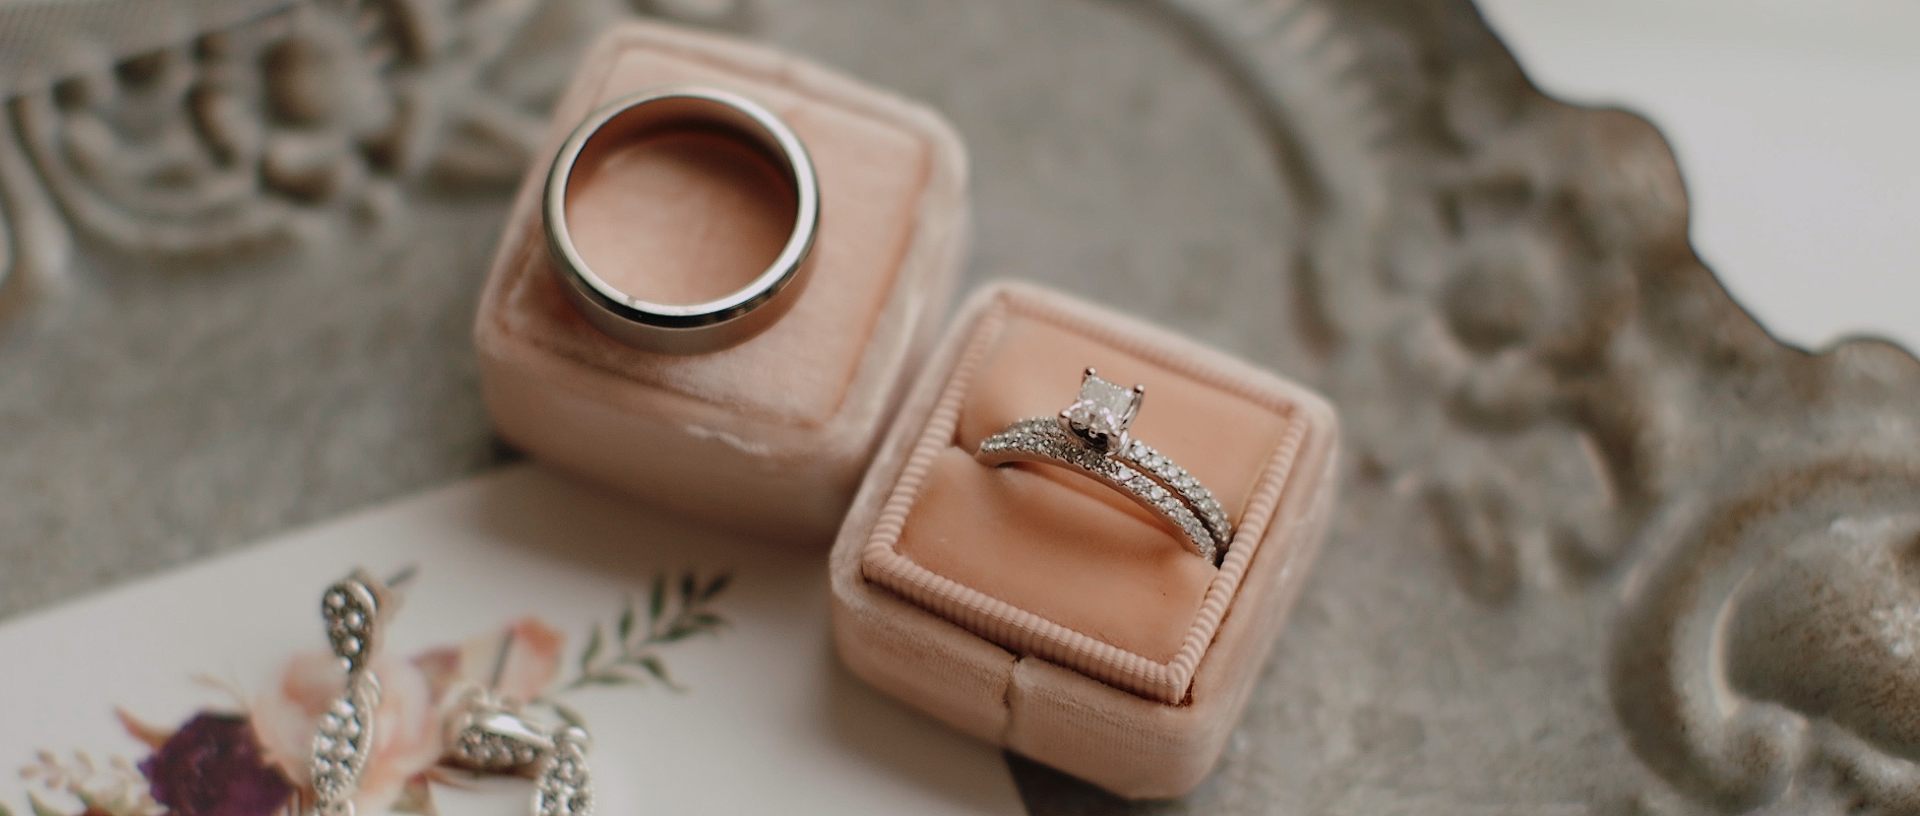 kansas-wedding-rings.jpg